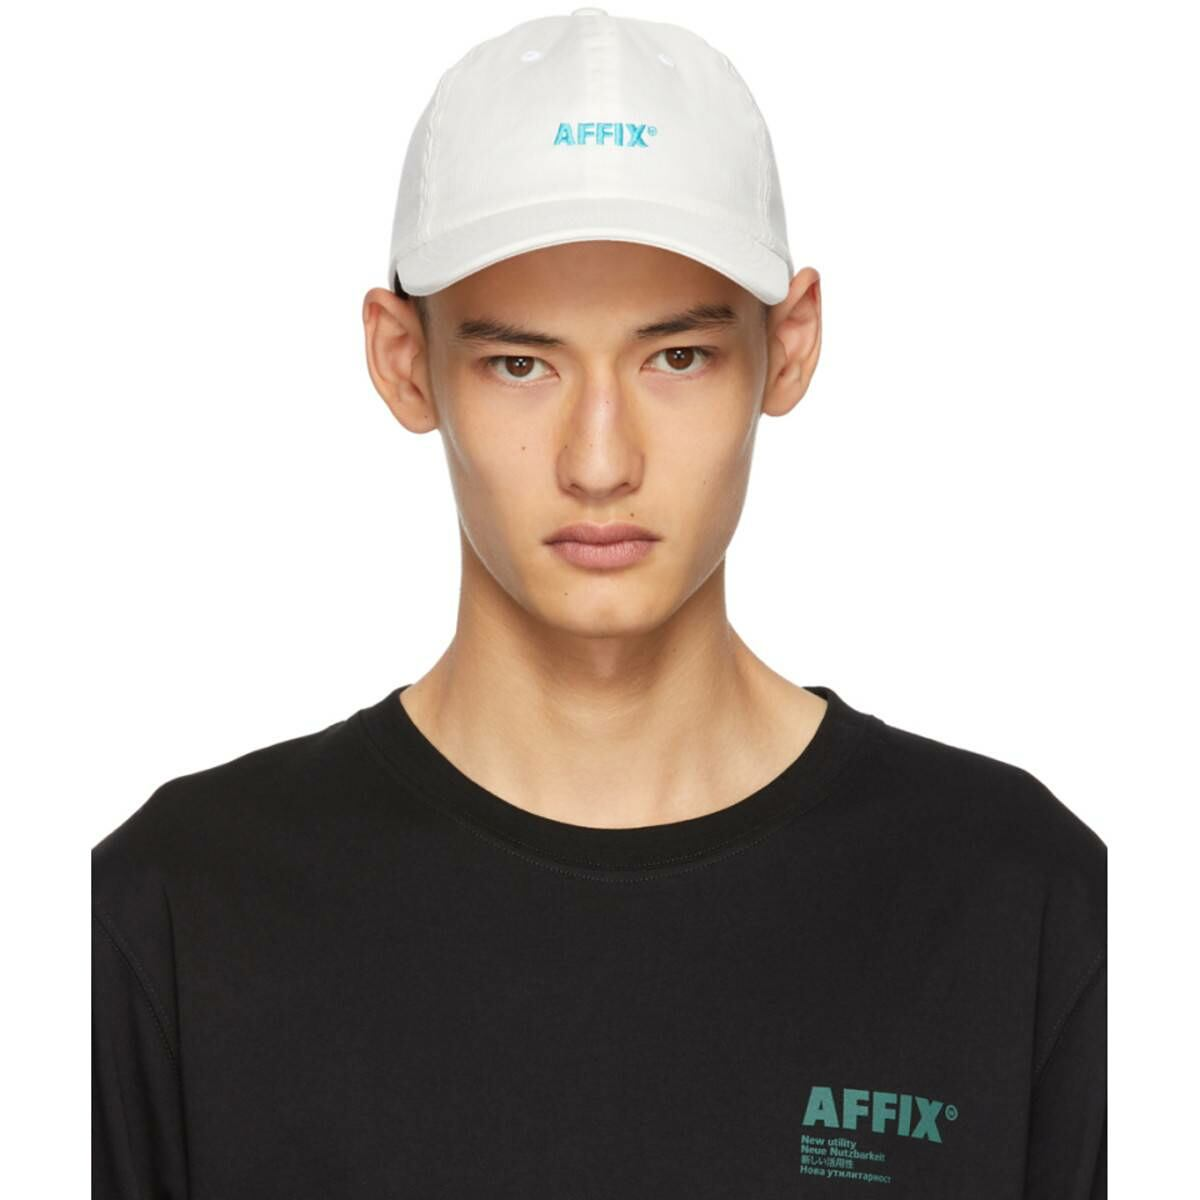 Affix White Standard Logo Drill Cap Ssense USA MEN Men ACCESSORIES Mens CAPS